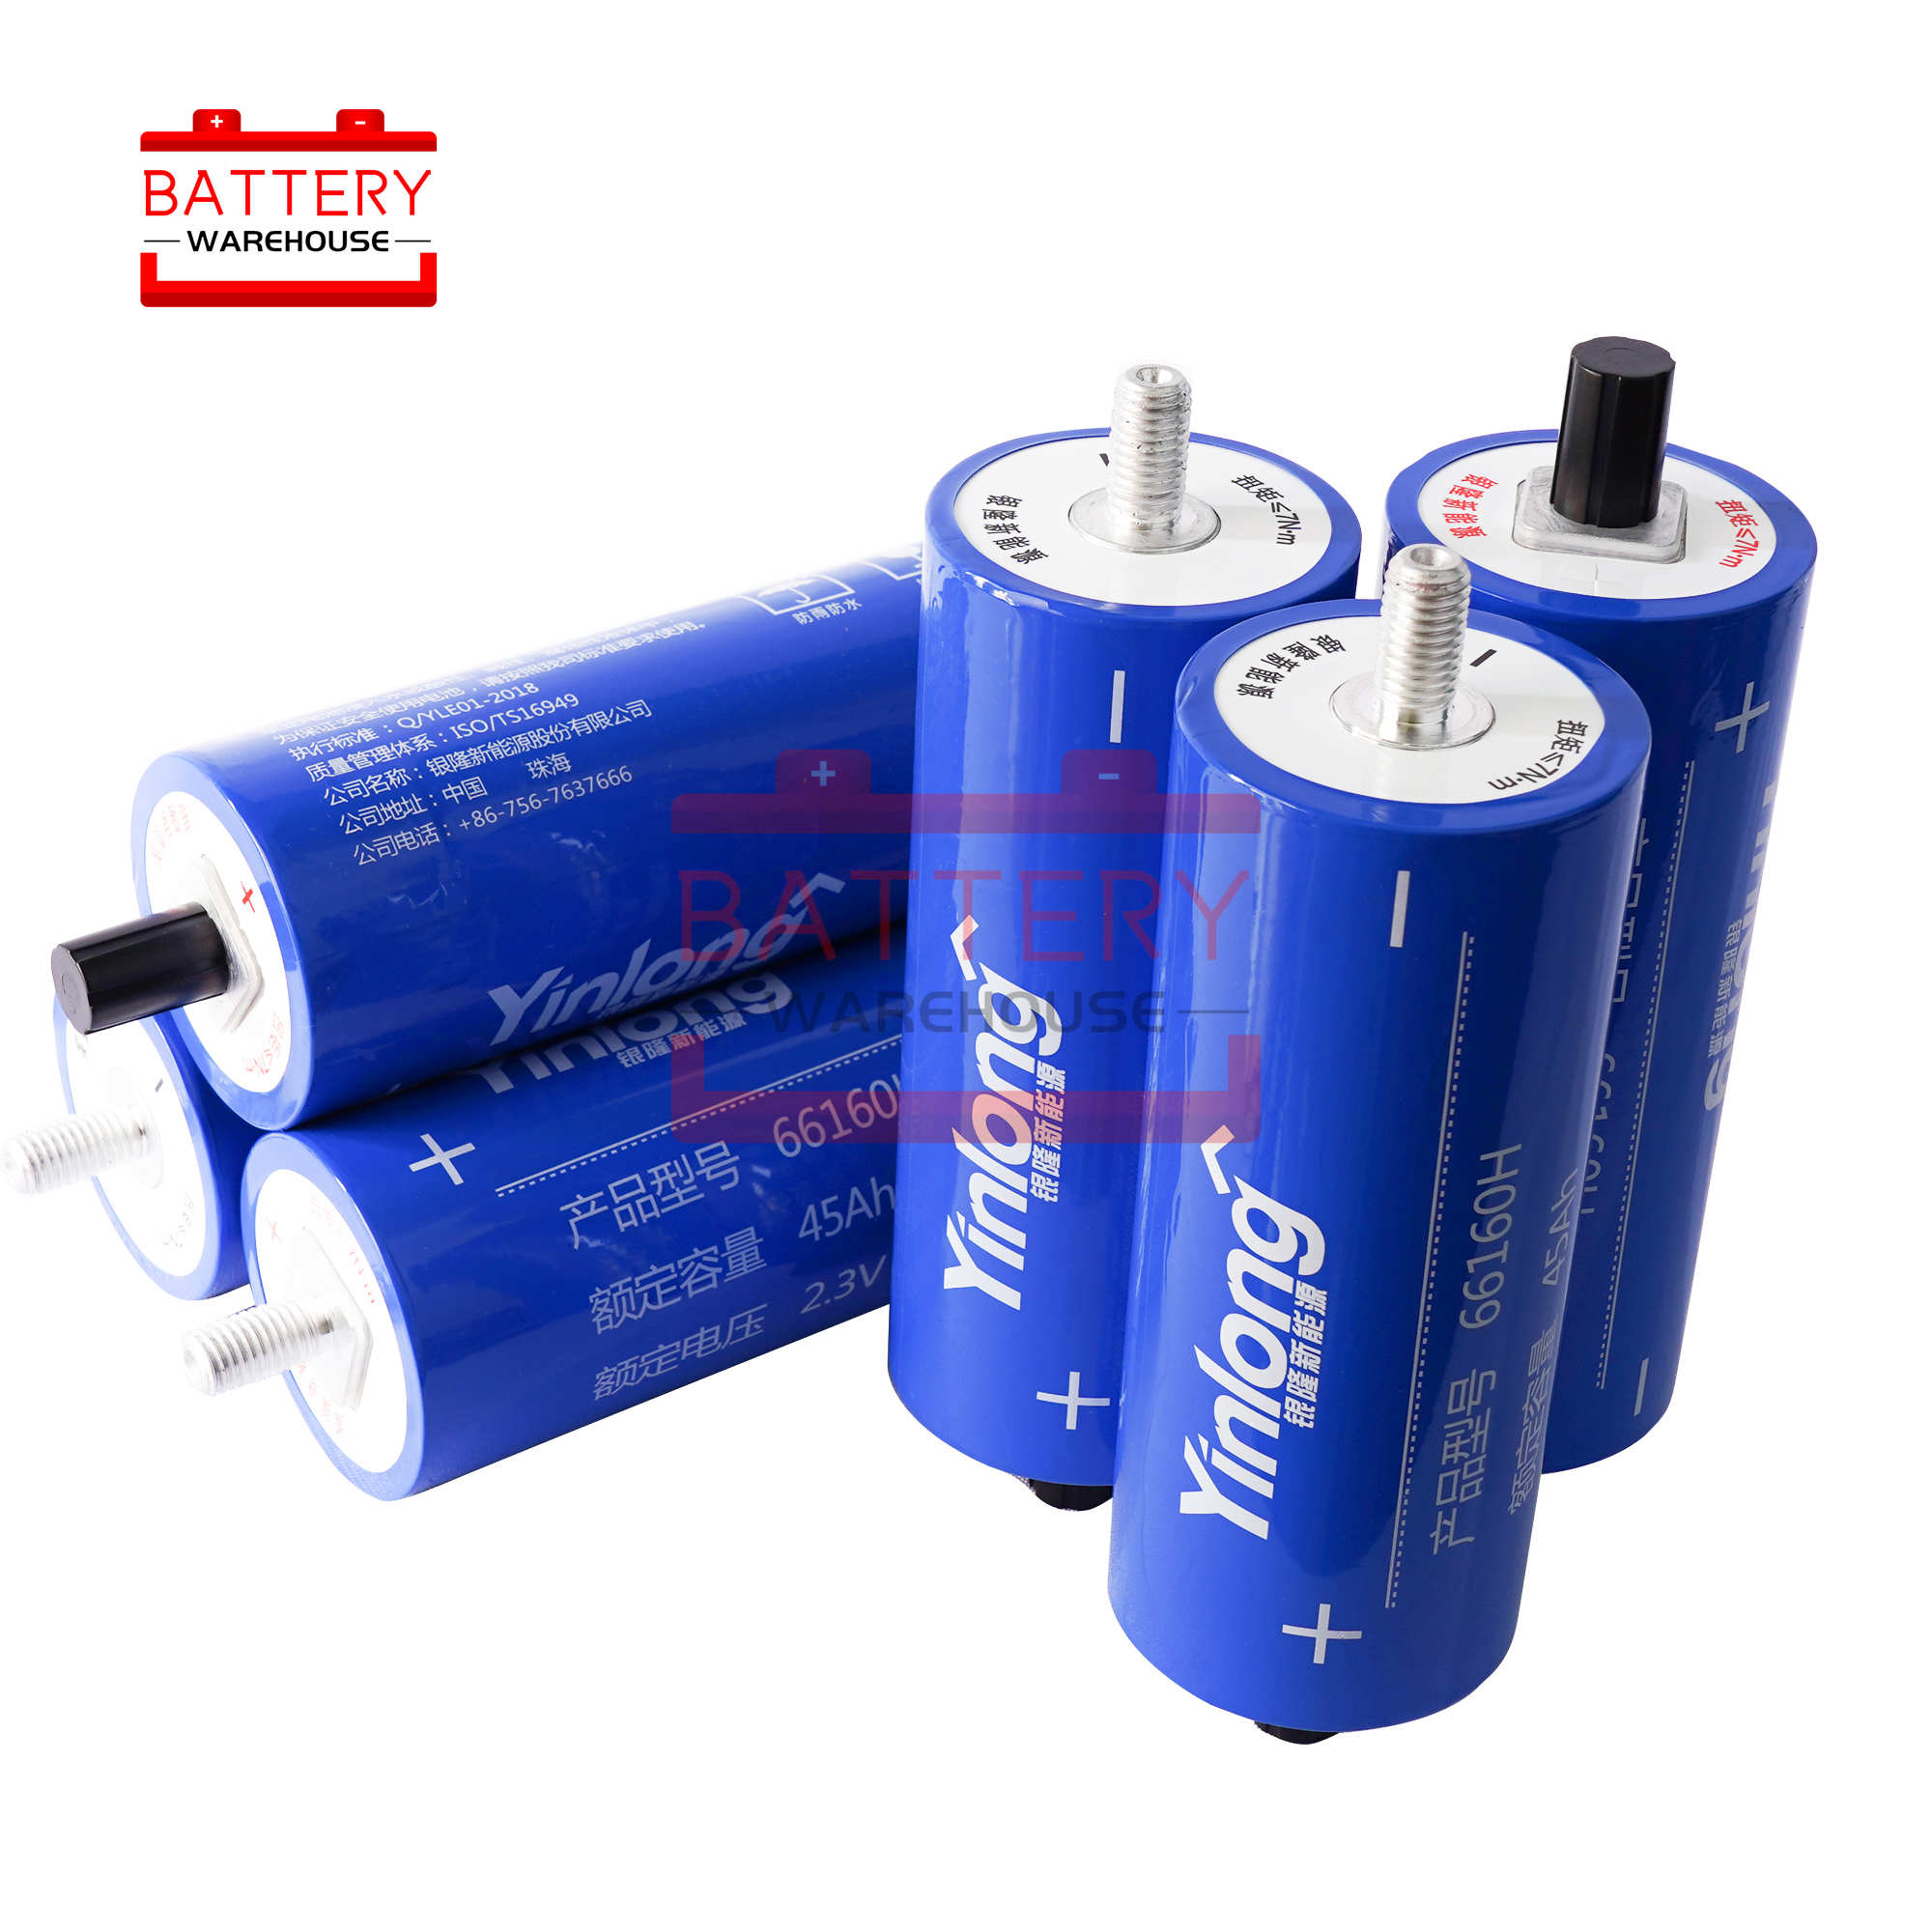 2.3v 45Ah LTO <font><b>66160</b></font> Lithium Titanate Battery Cell new 2.4v 66160H 10C 450A for Diy Pack 12v 14.4v Power Long Cycle Life Stocks image